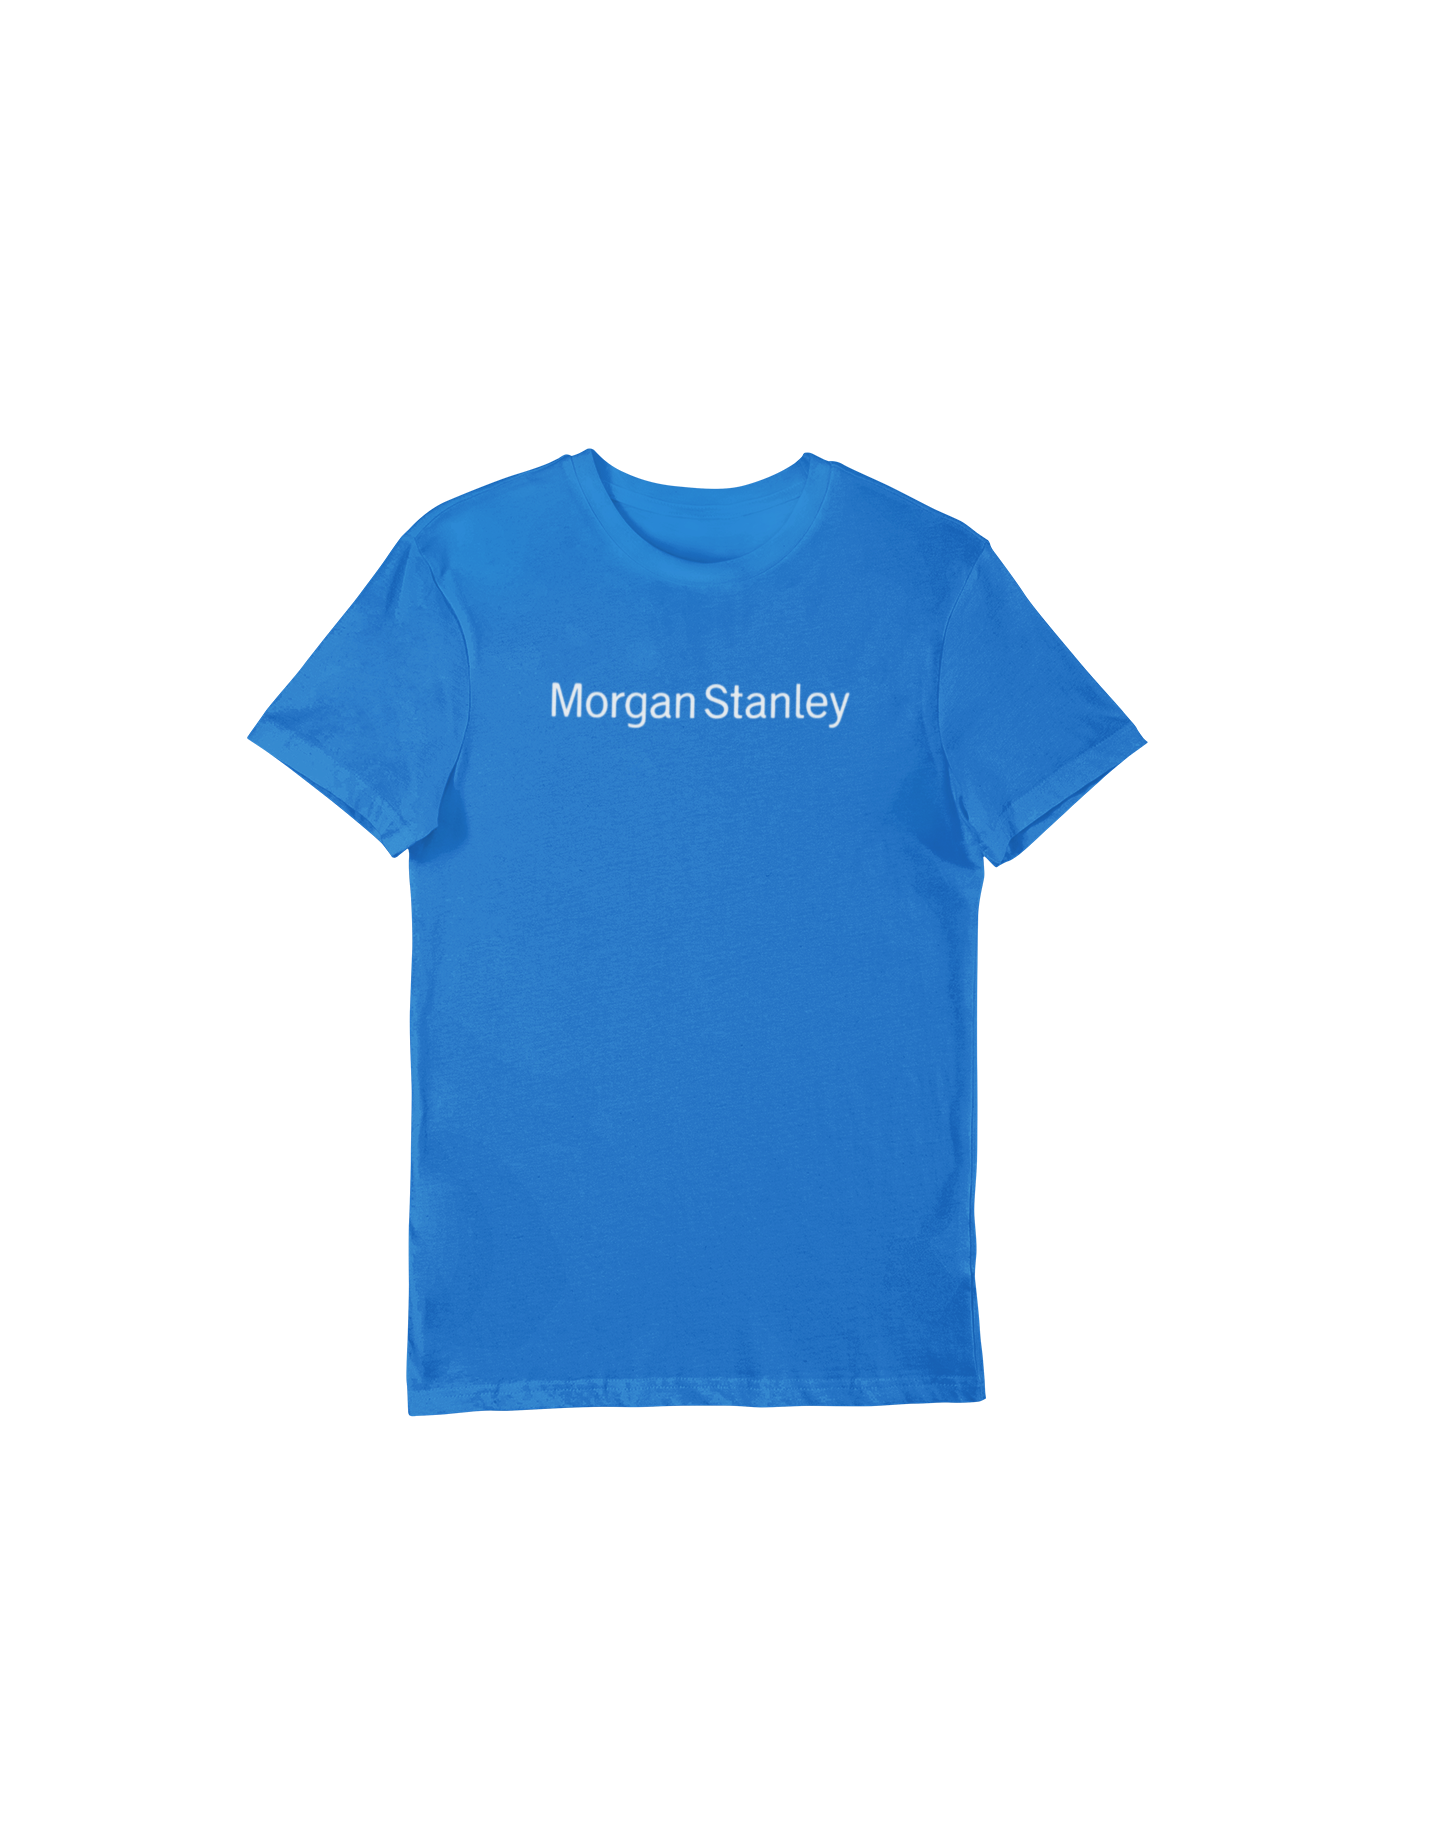 Morgan Stanley - Big Logo T-Shirt